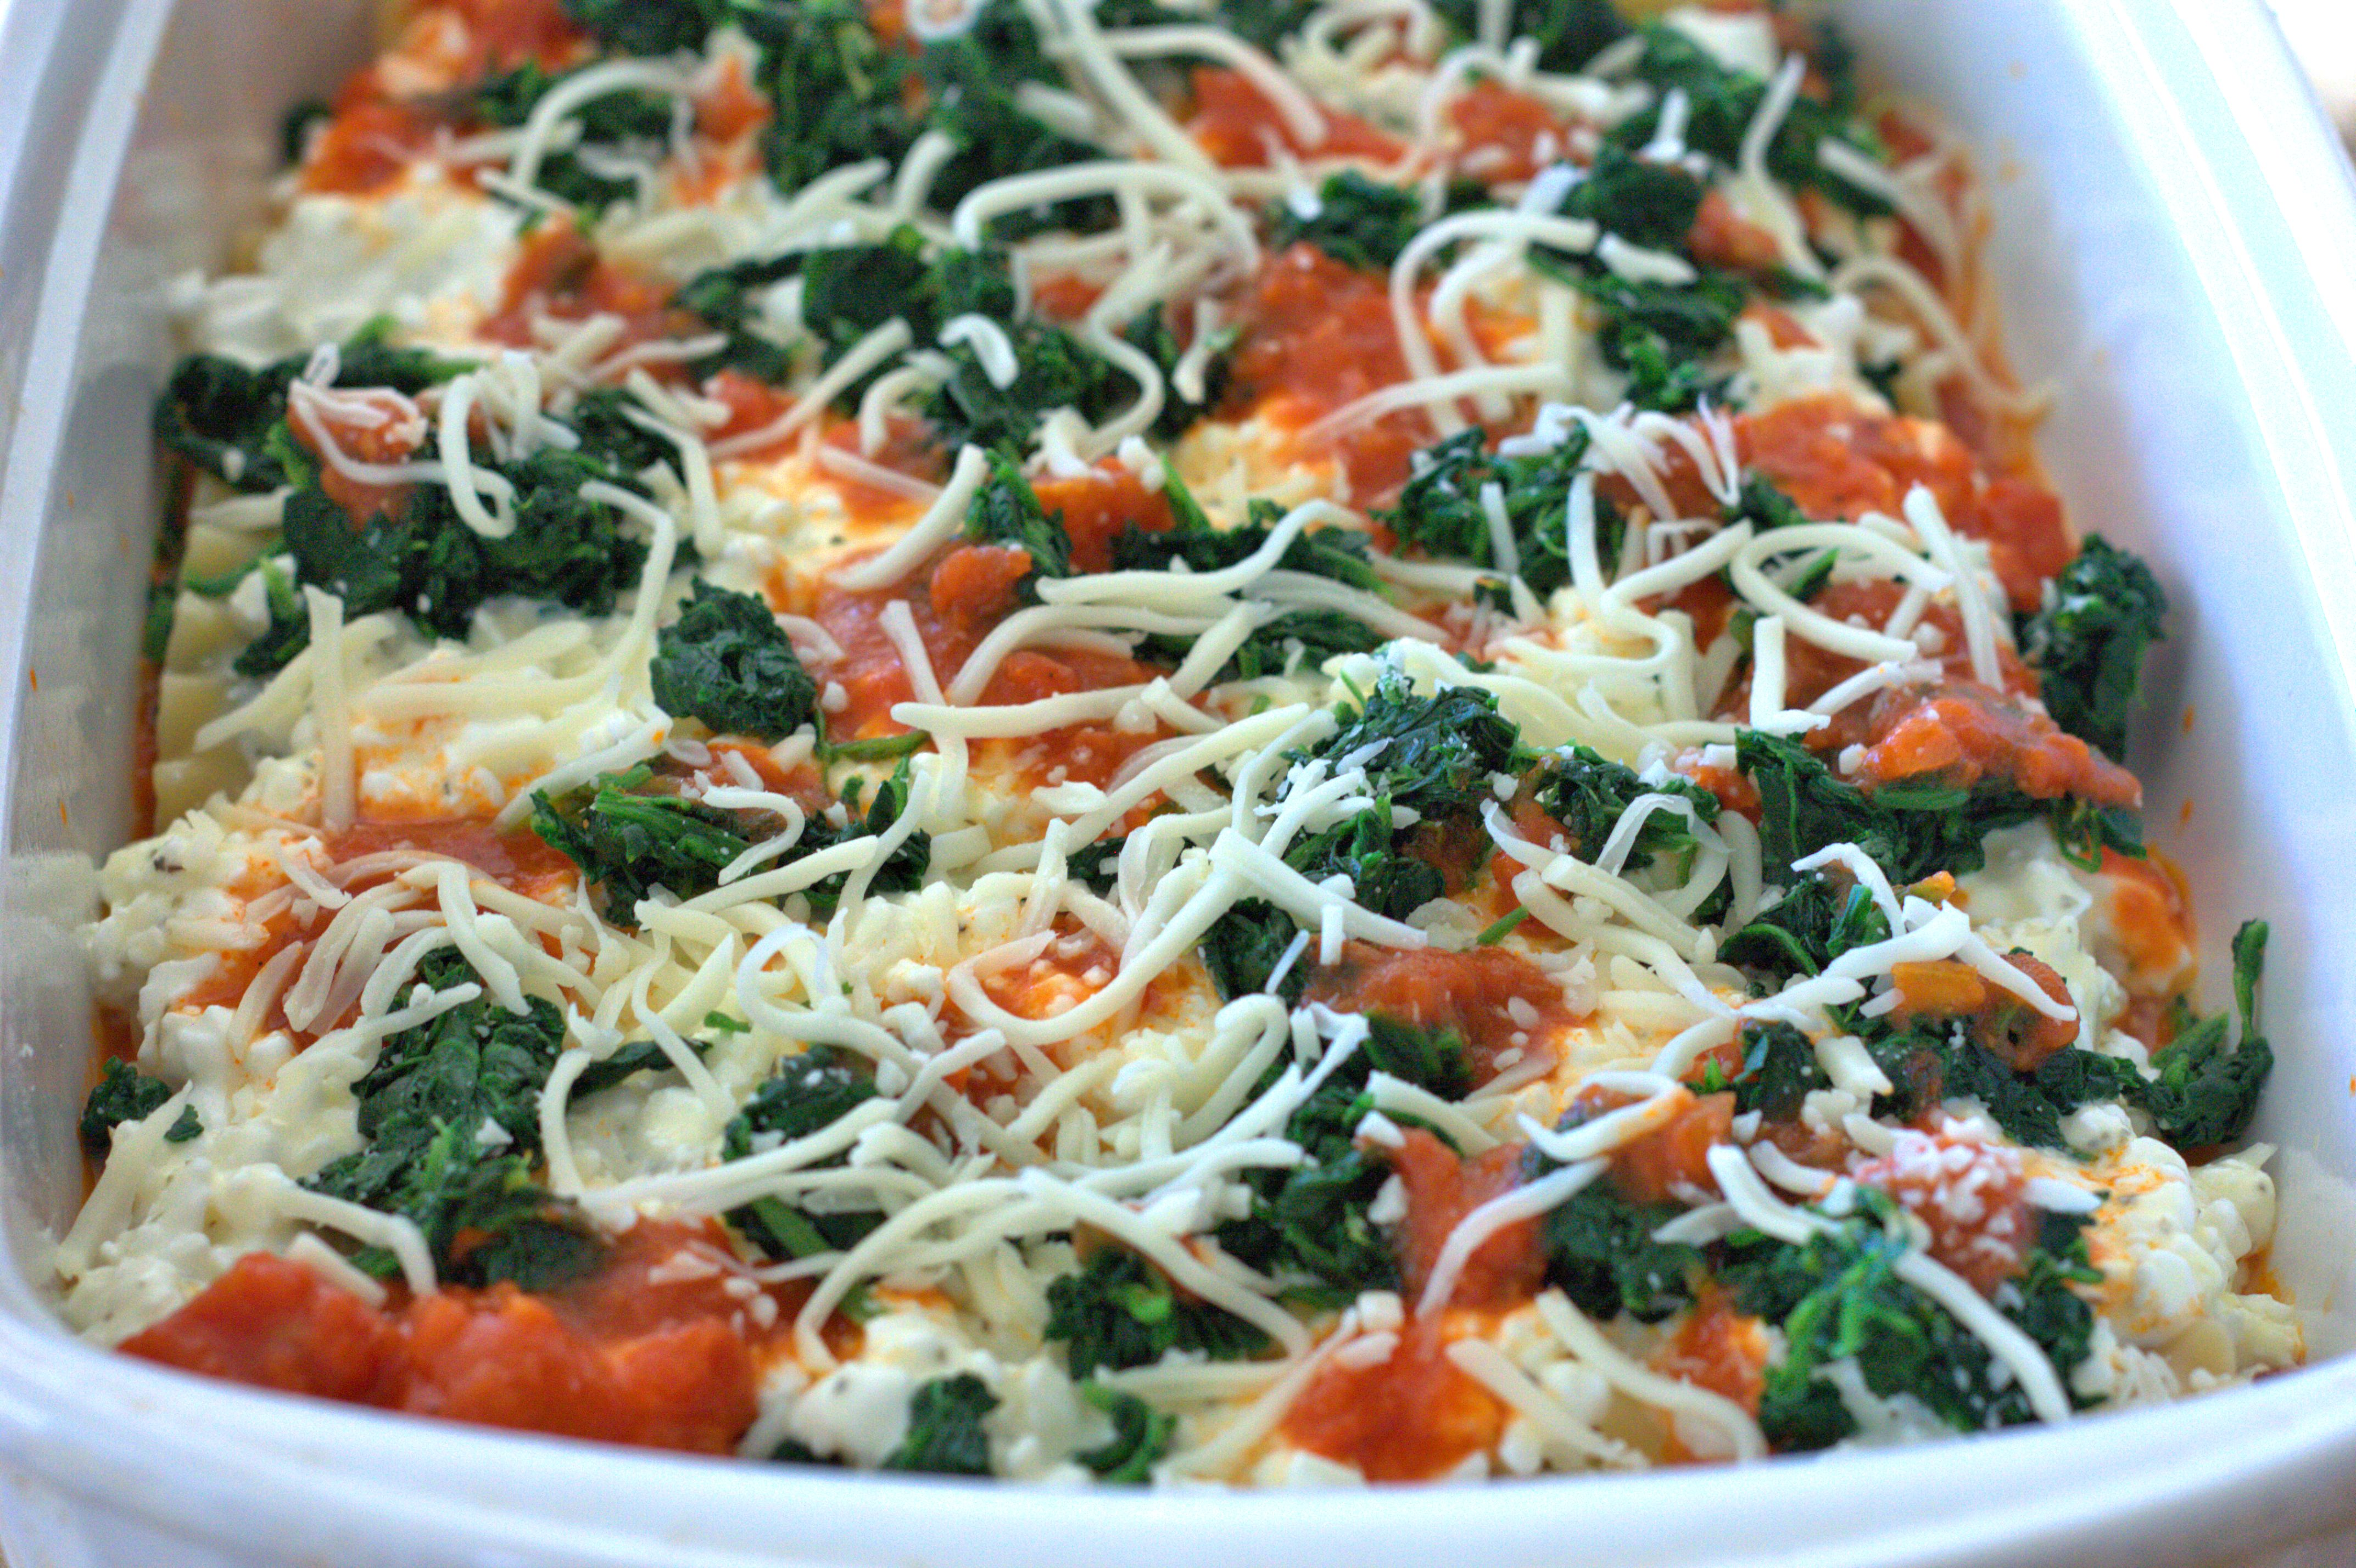 Charming The First Tweak I Made To The Recipe Was The Cheese Filler. Growing Up, My  Mom Always Made A Lighter Version Of Lasagna Using Cottage Cheese Instead  Of ...